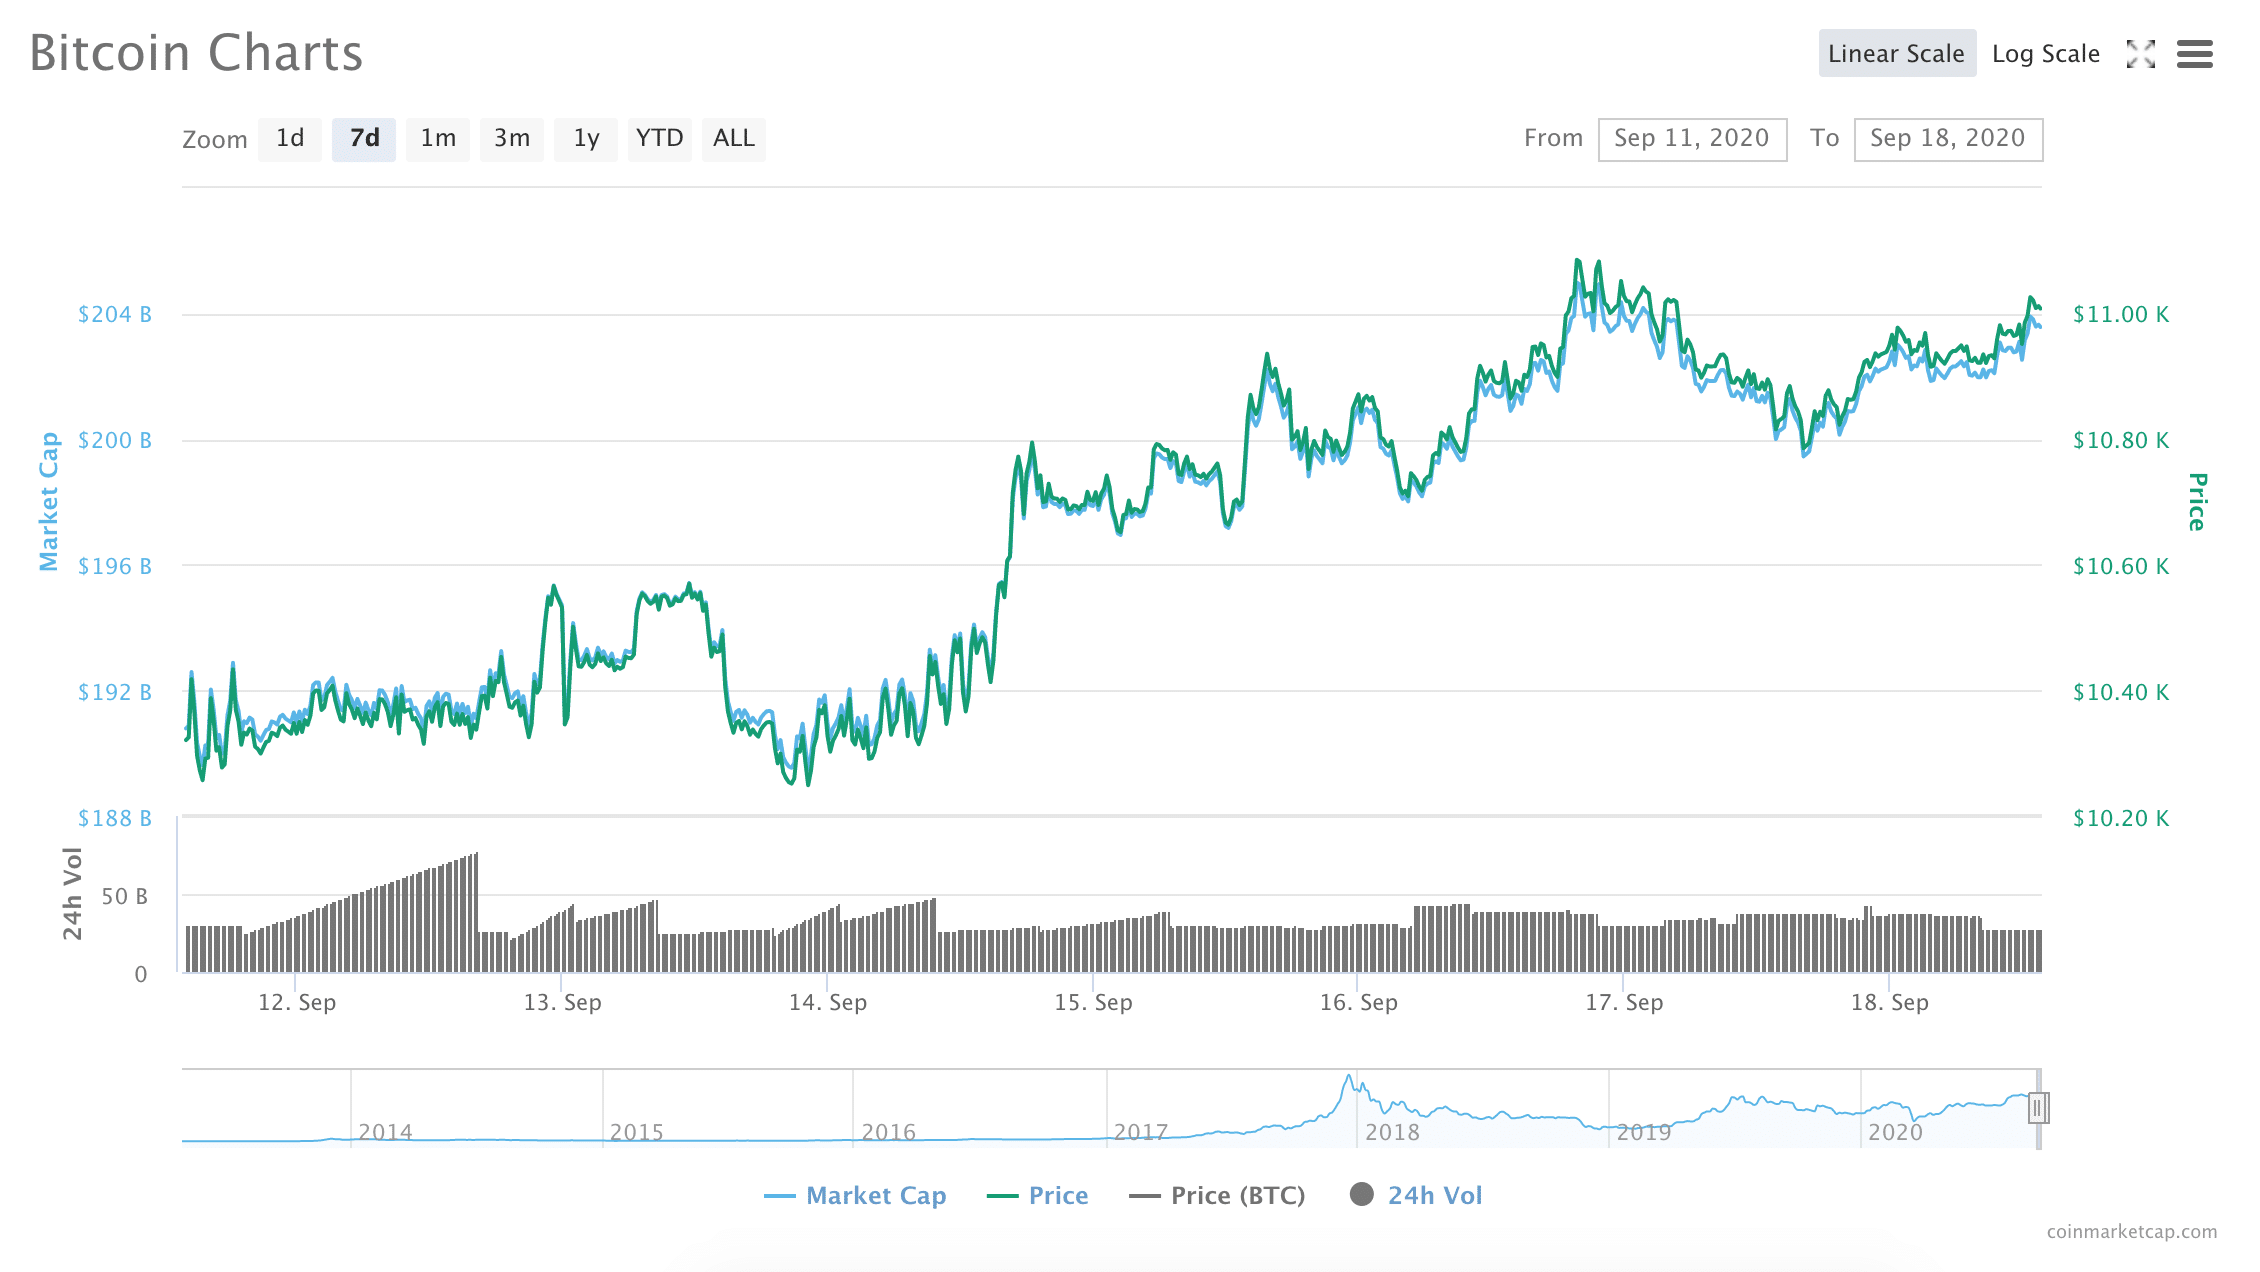 Is Bitcoin Headed for a Bull Run? BTC Shows Signs of Recapuring $12K